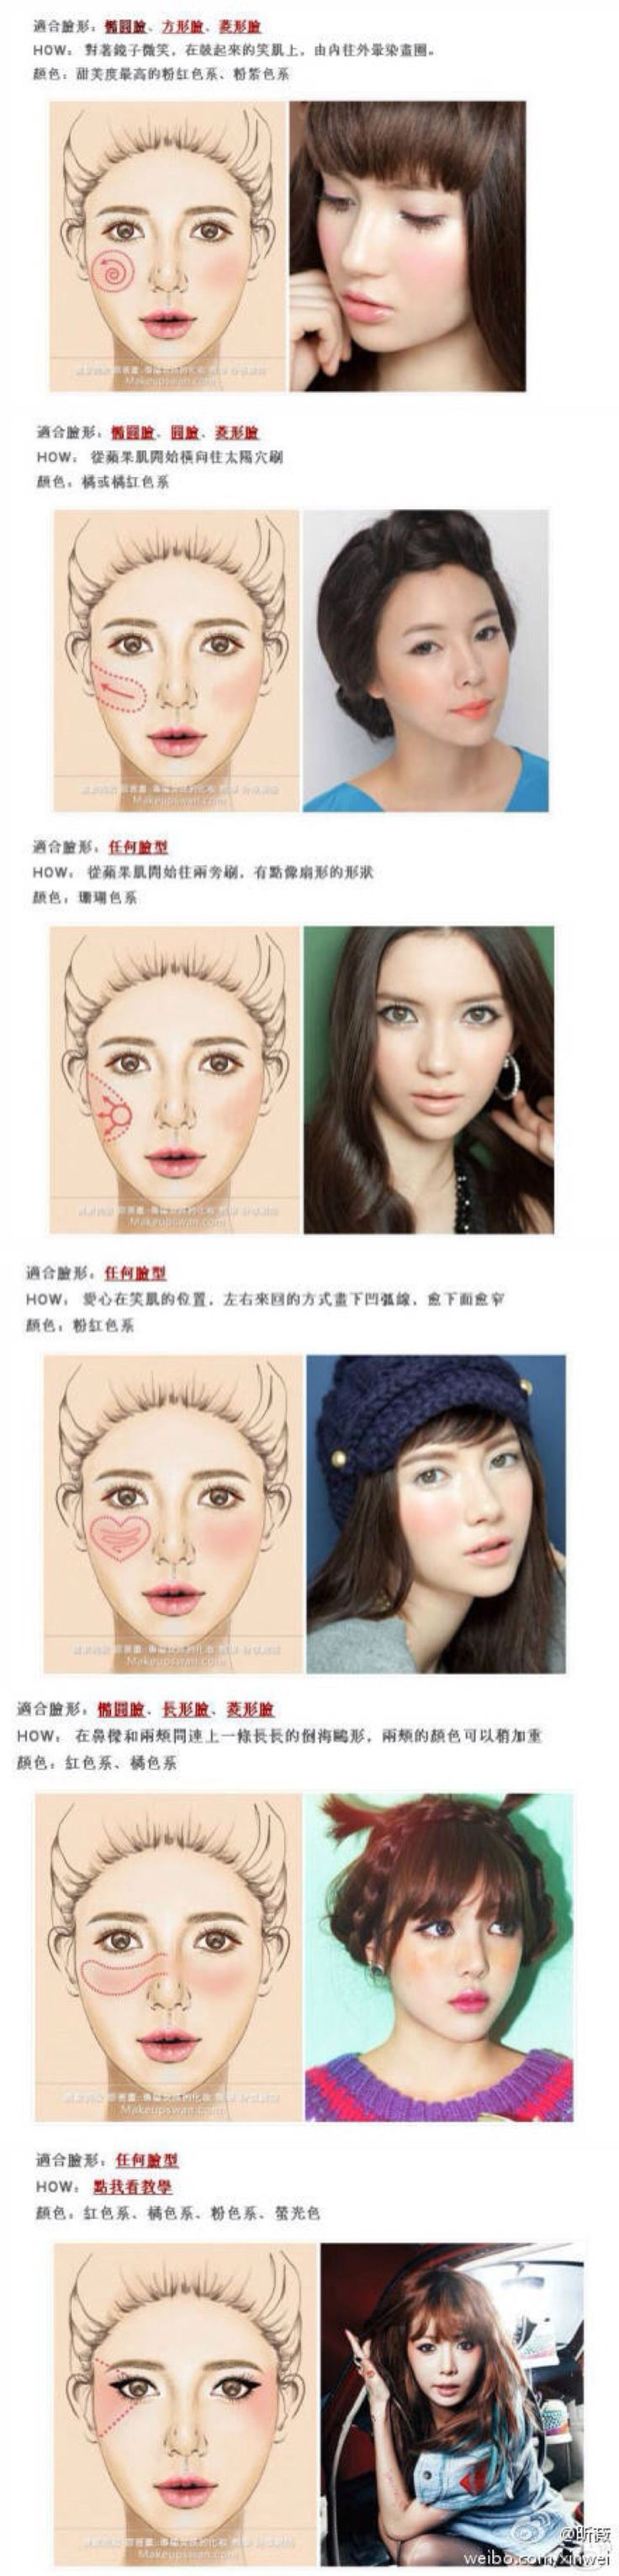 How to apply blush to get different looks! #asianmakeup #koreanmakeup